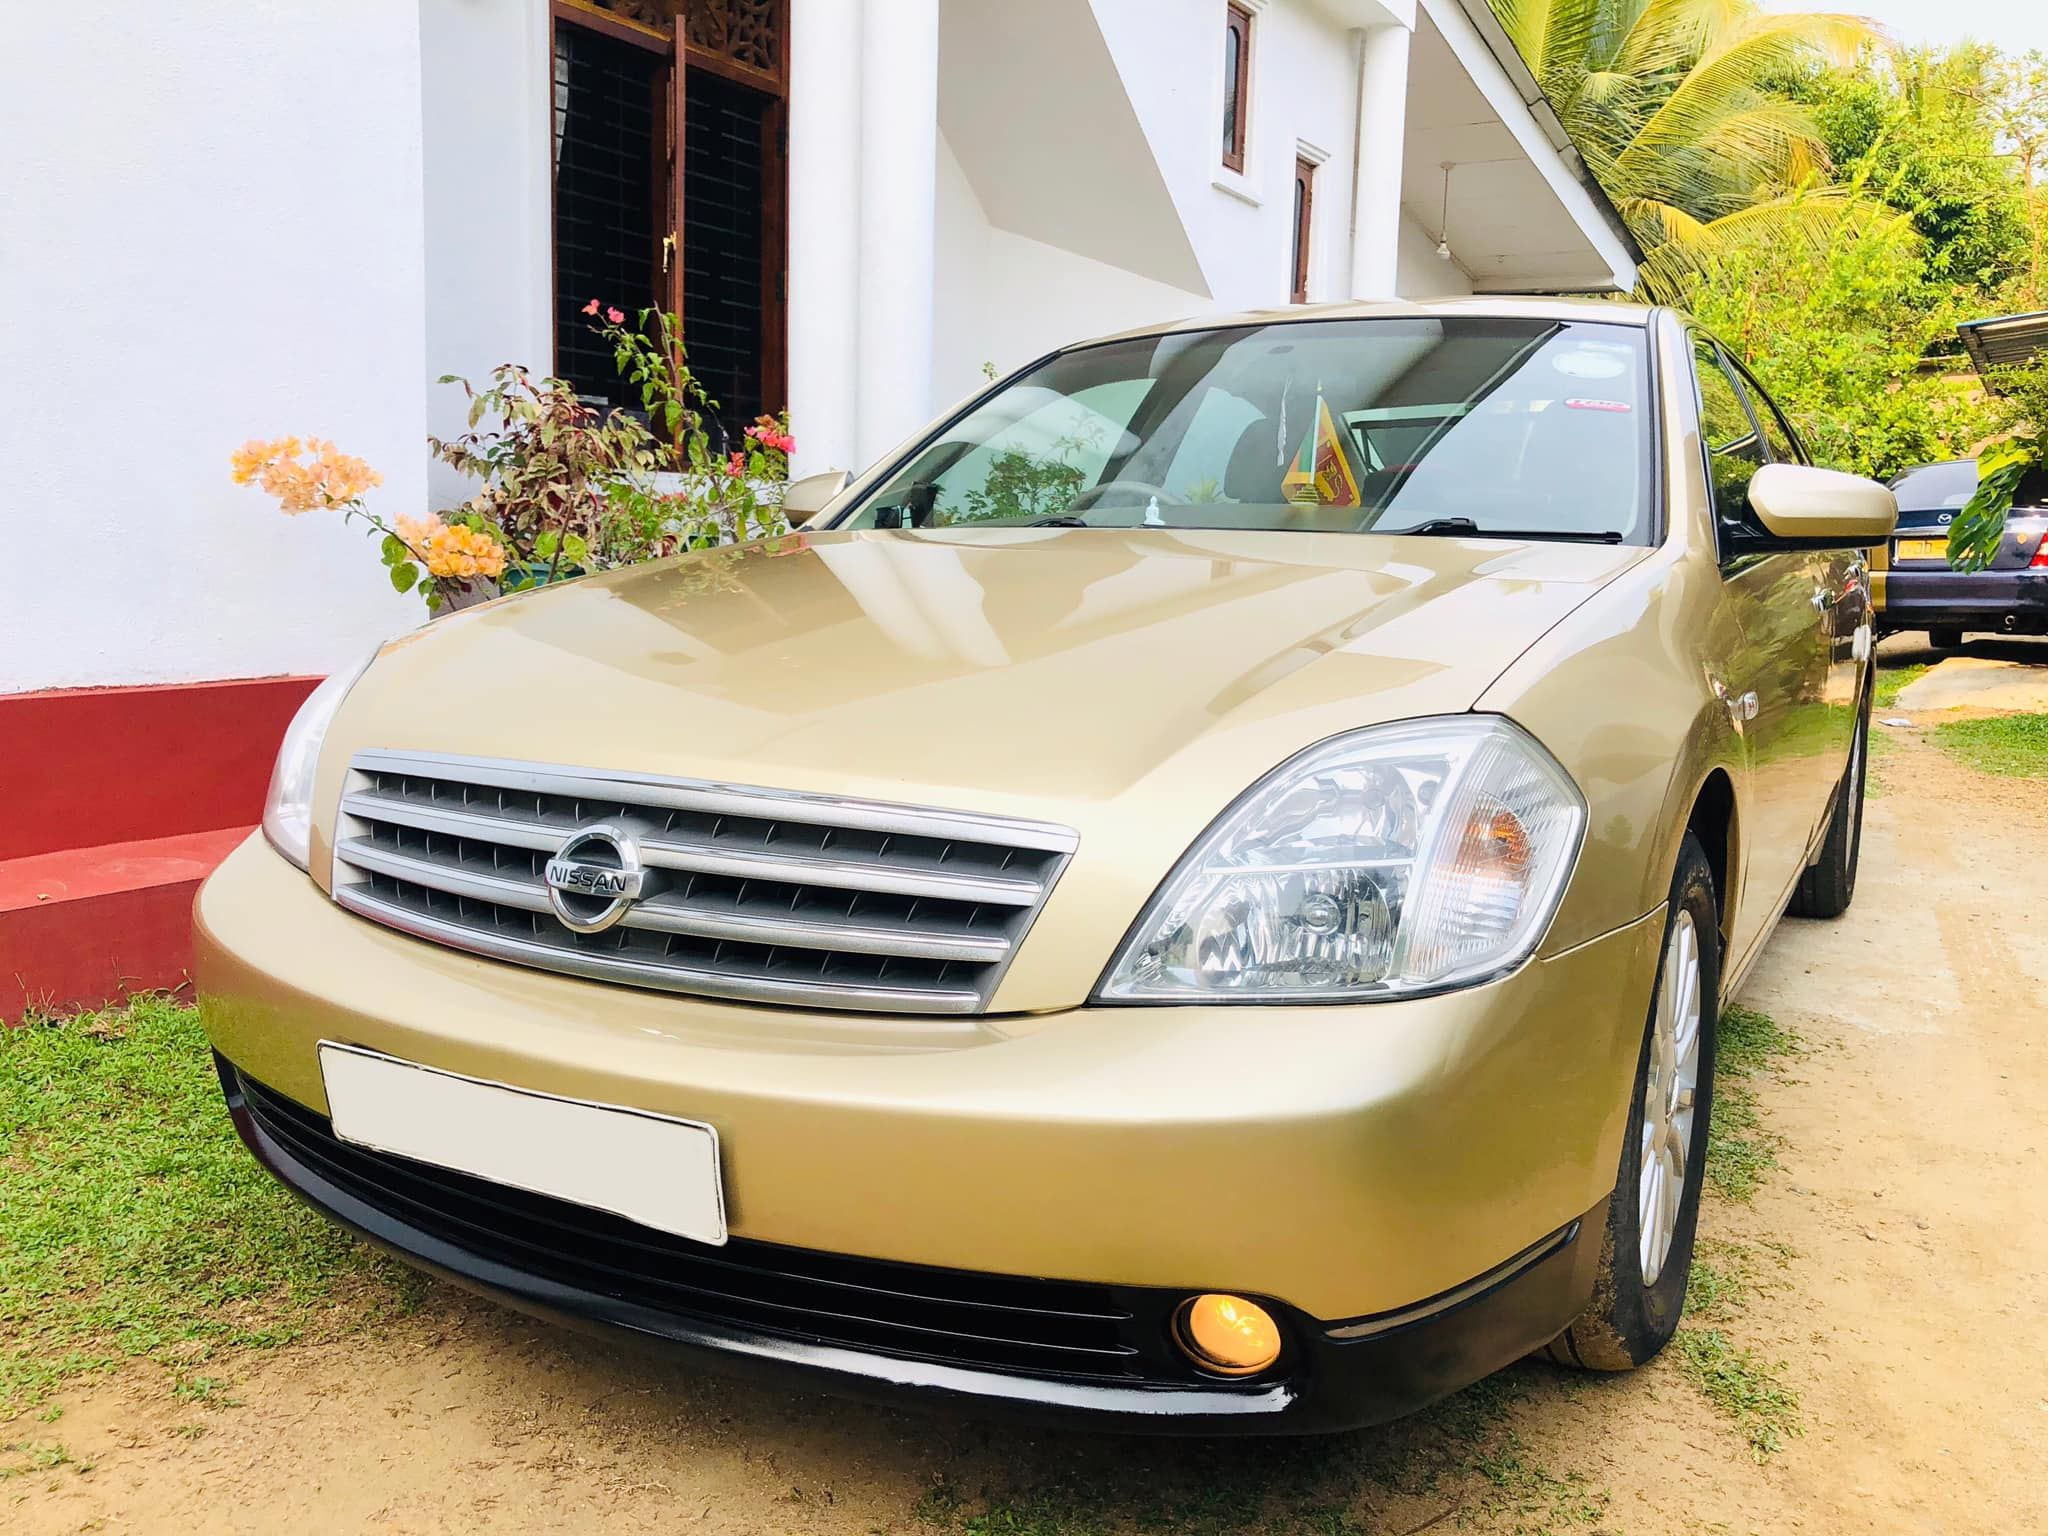 Nissan JM230 luxury Car for sale in Belagama in 2020